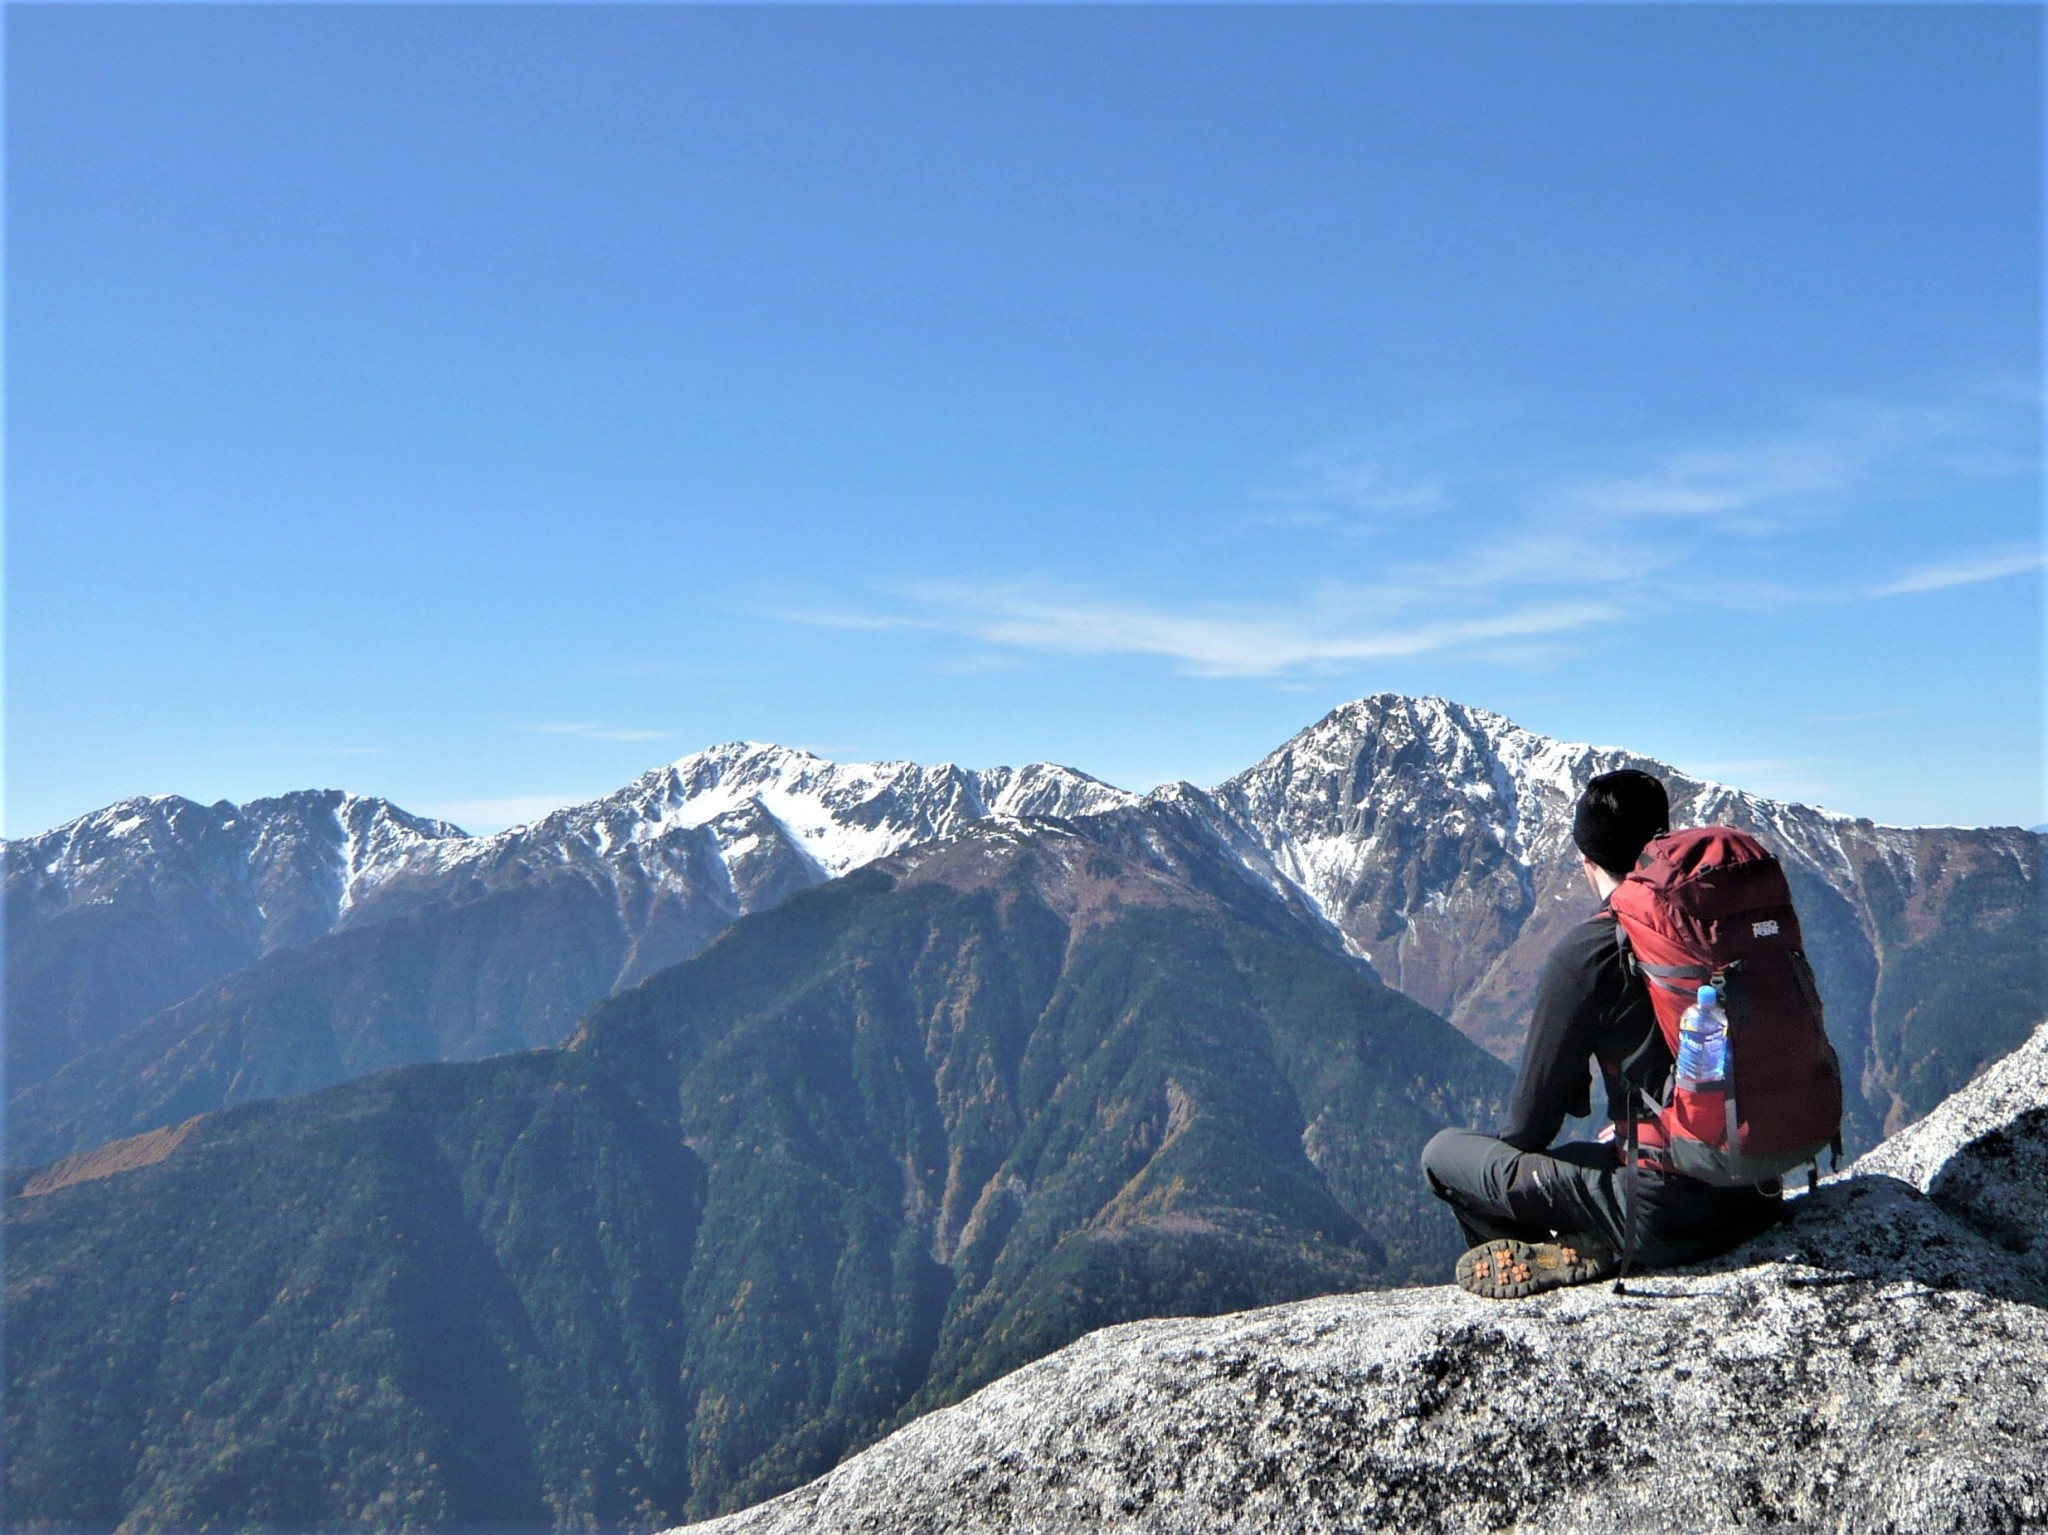 A sitting hiker gazing out over a collection of snow-covered peaks in the Japan Alps.